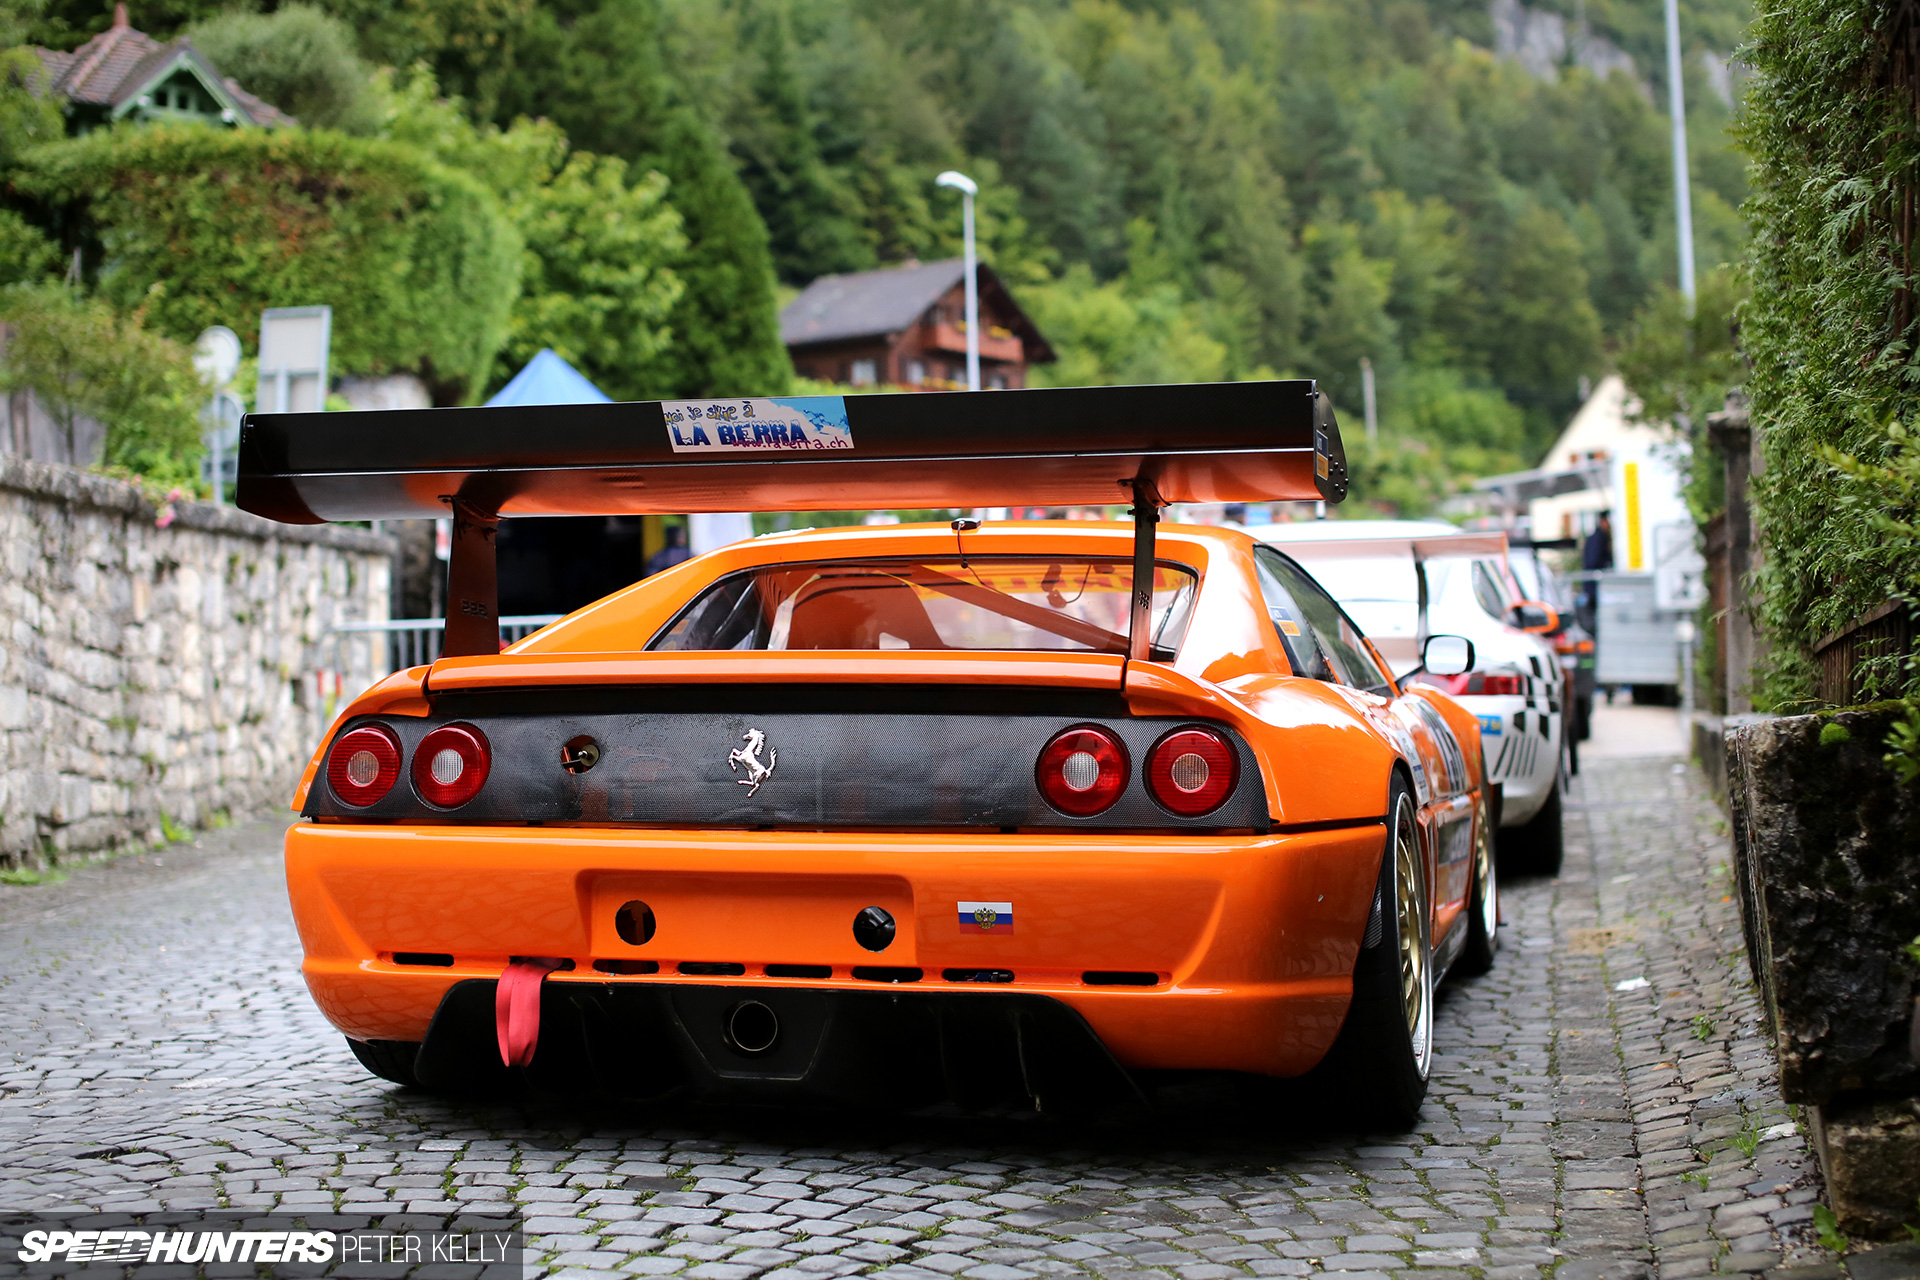 The Ferrari F355 Built To Climb Speedhunters